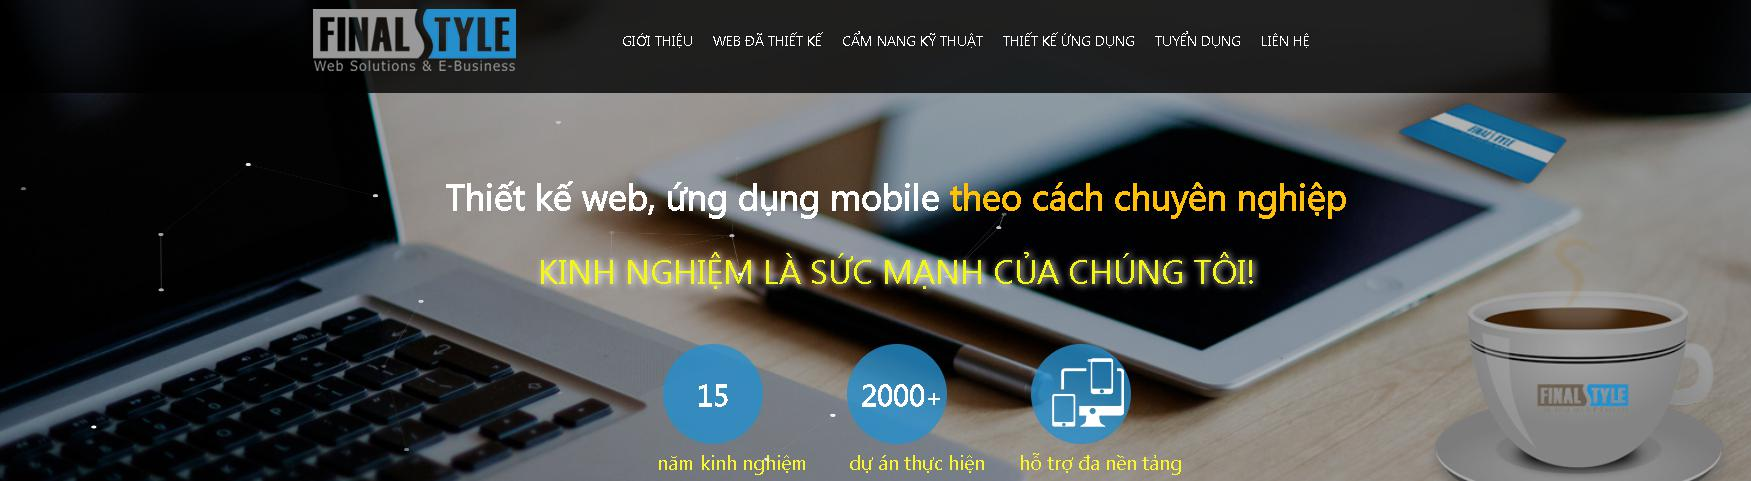 Công ty thiết kế website FinalStyle